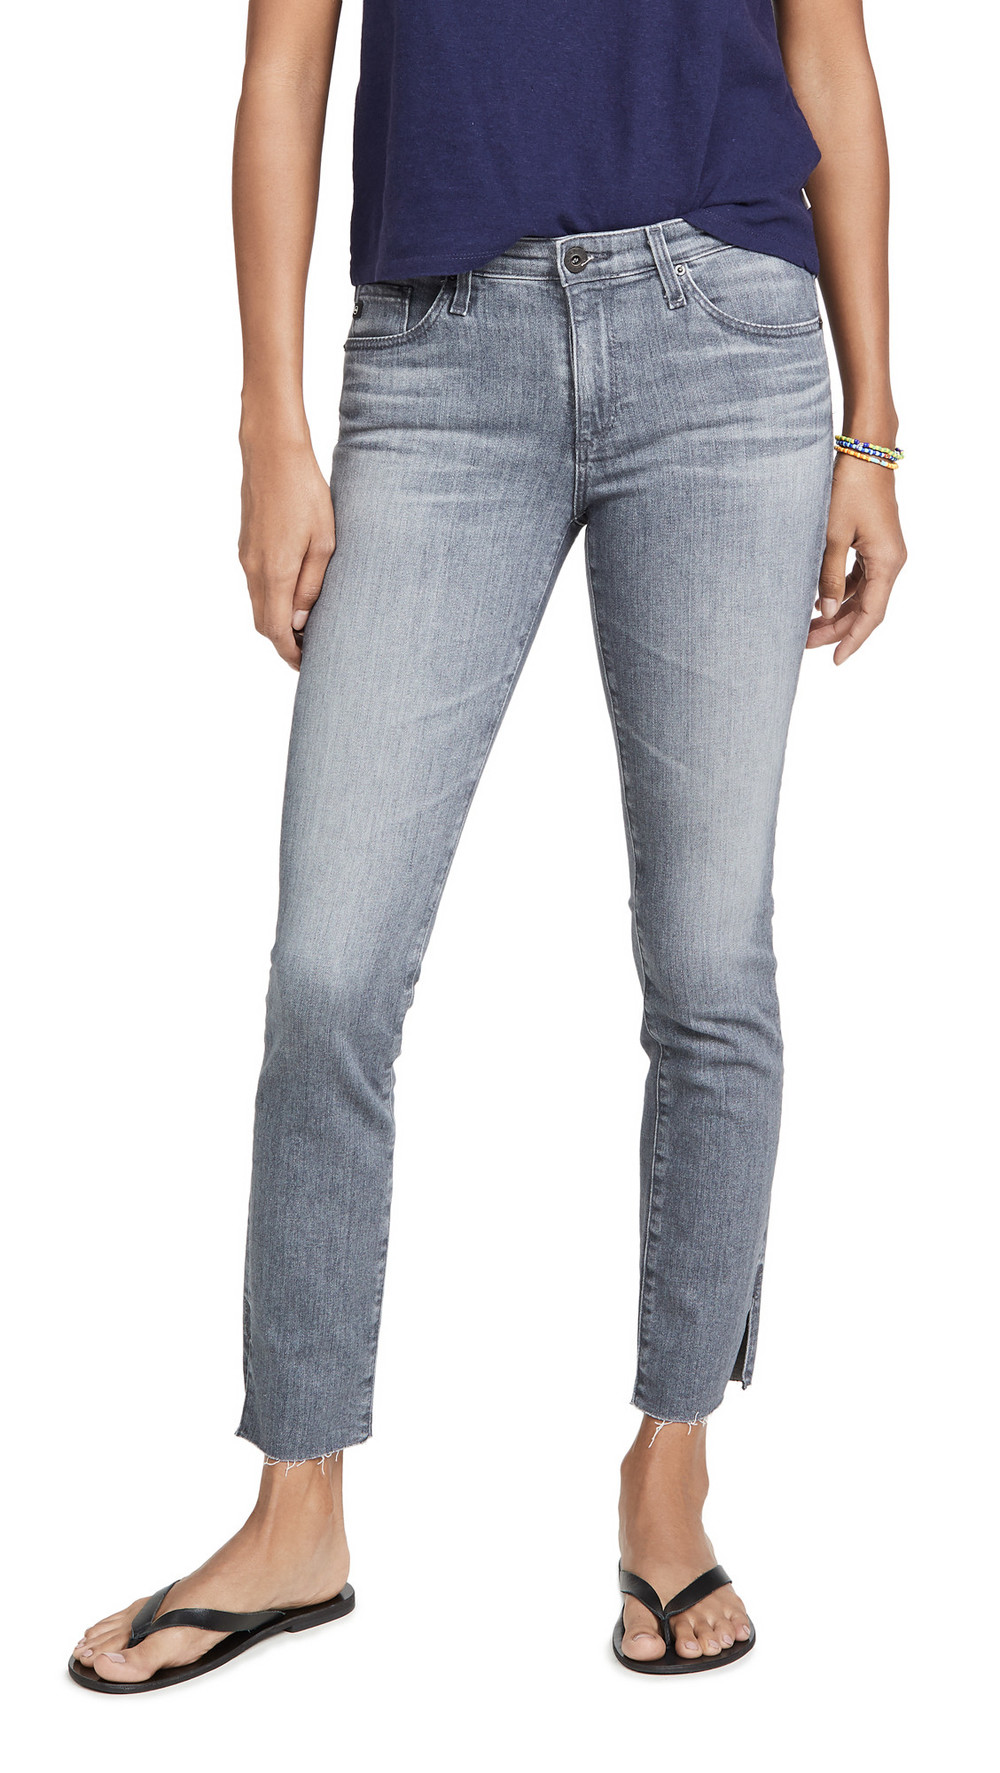 AG The Prima Ankle Skinny Jeans in grey